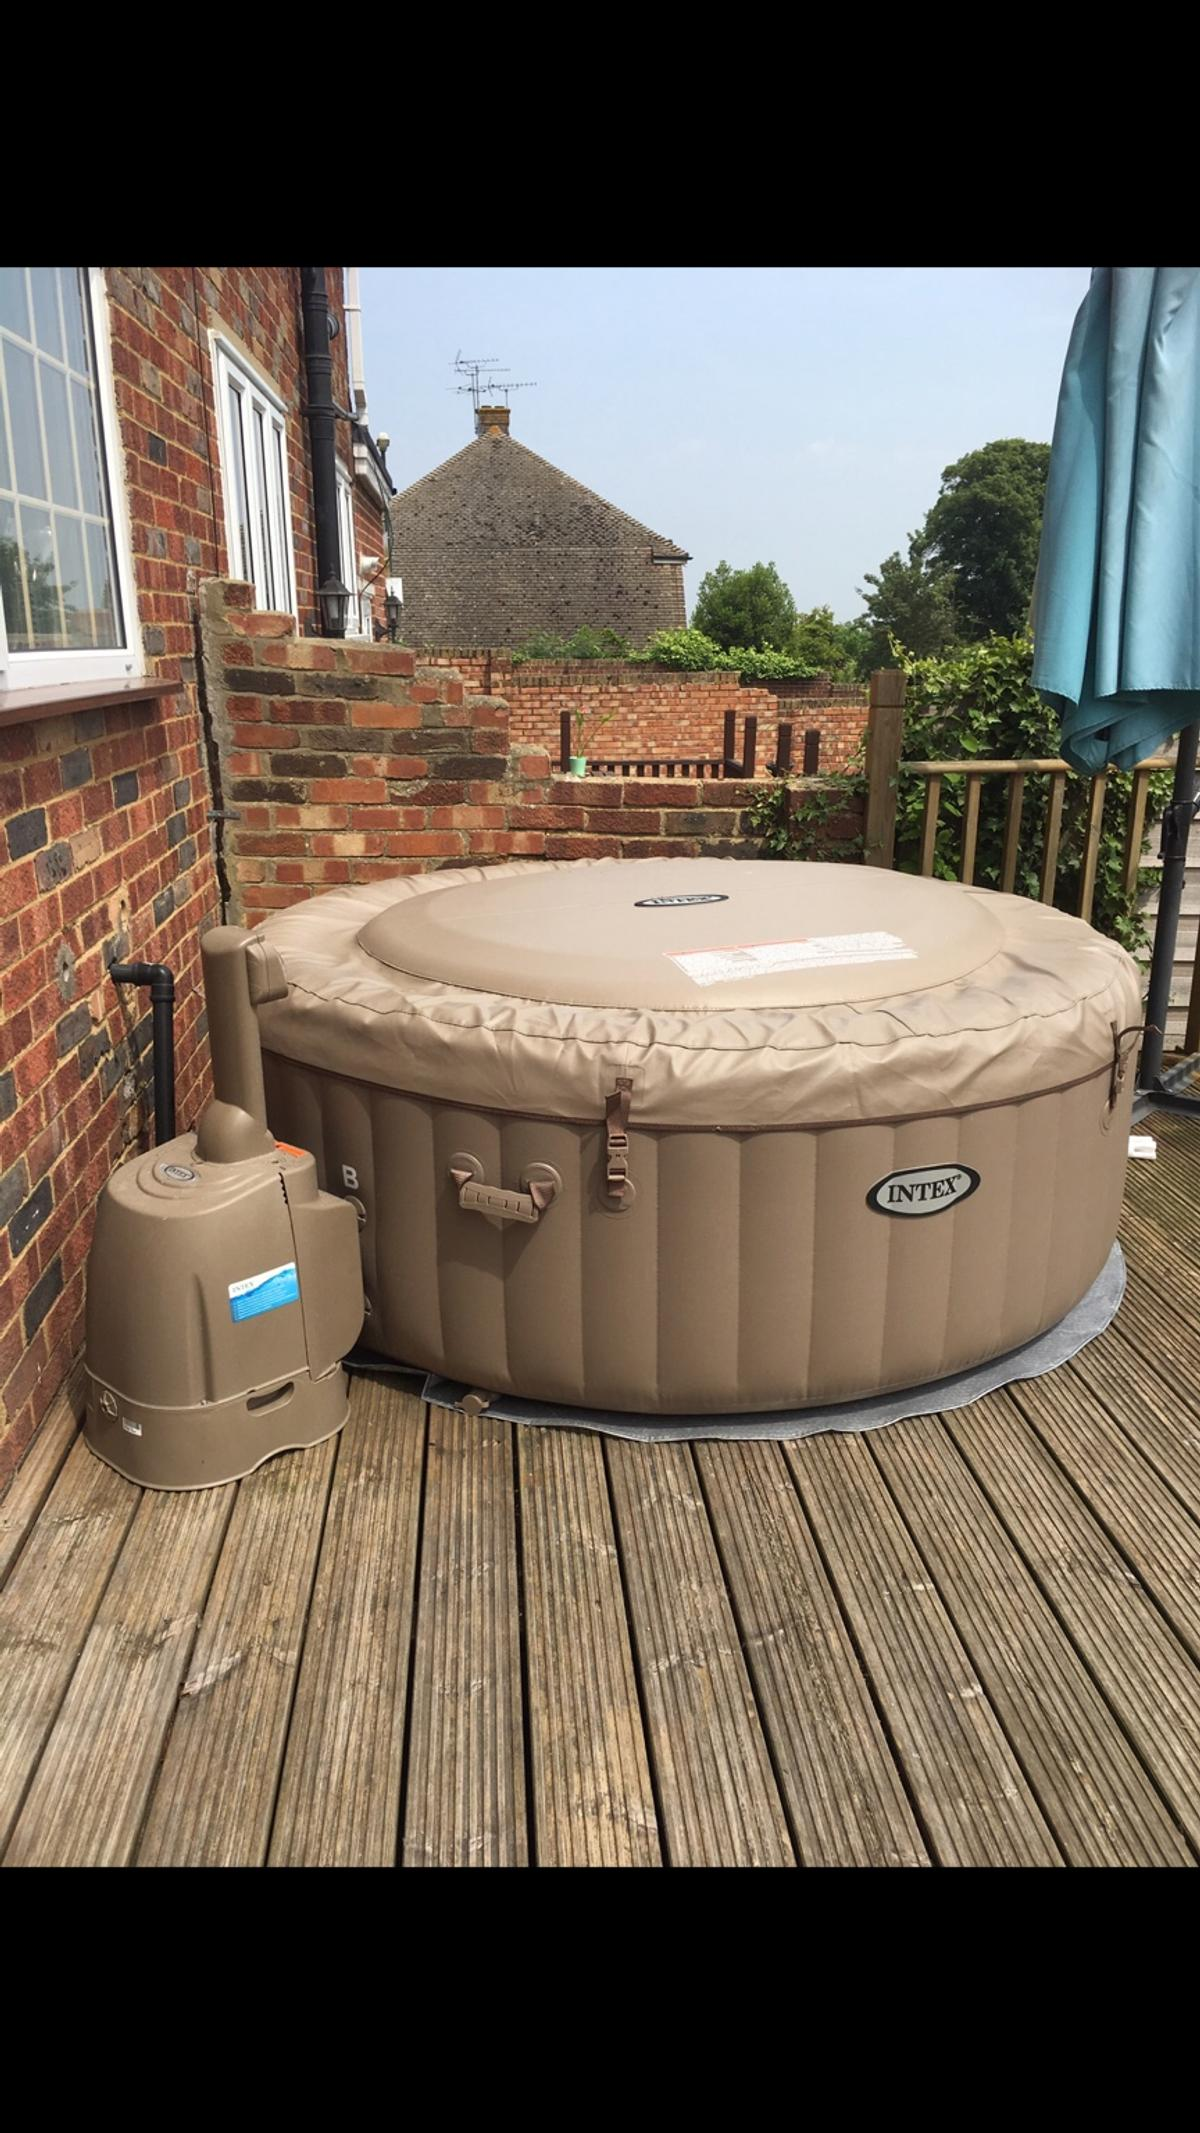 Intex Pure Spa Hot Tub Bargain In Me8 Gillingham For 300 00